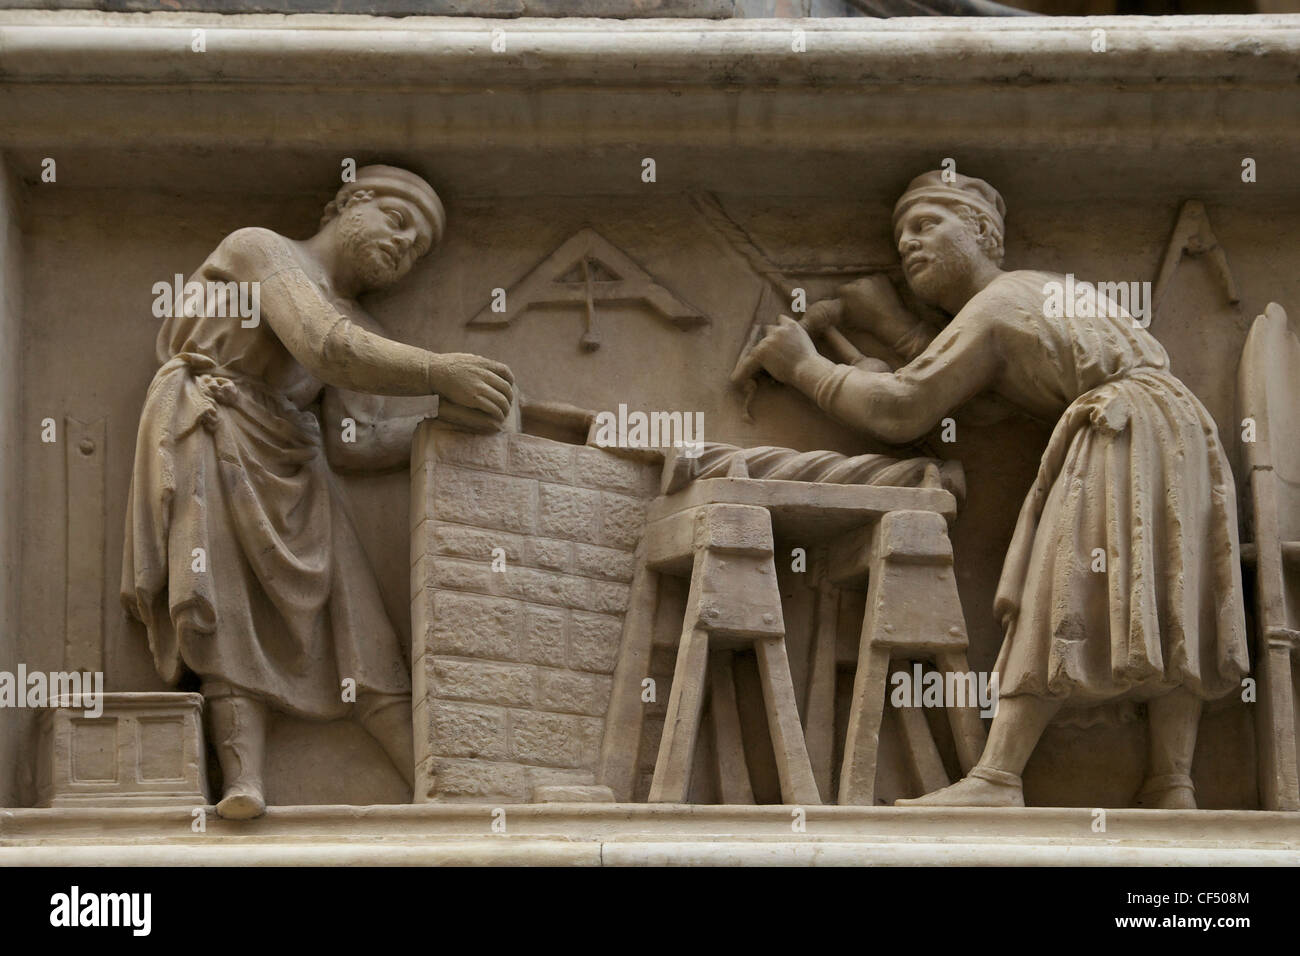 Carpenters at work, marble relief frieze, exterior of Orsanmichele, Florence, Tuscany, Italy, Europe - Stock Image